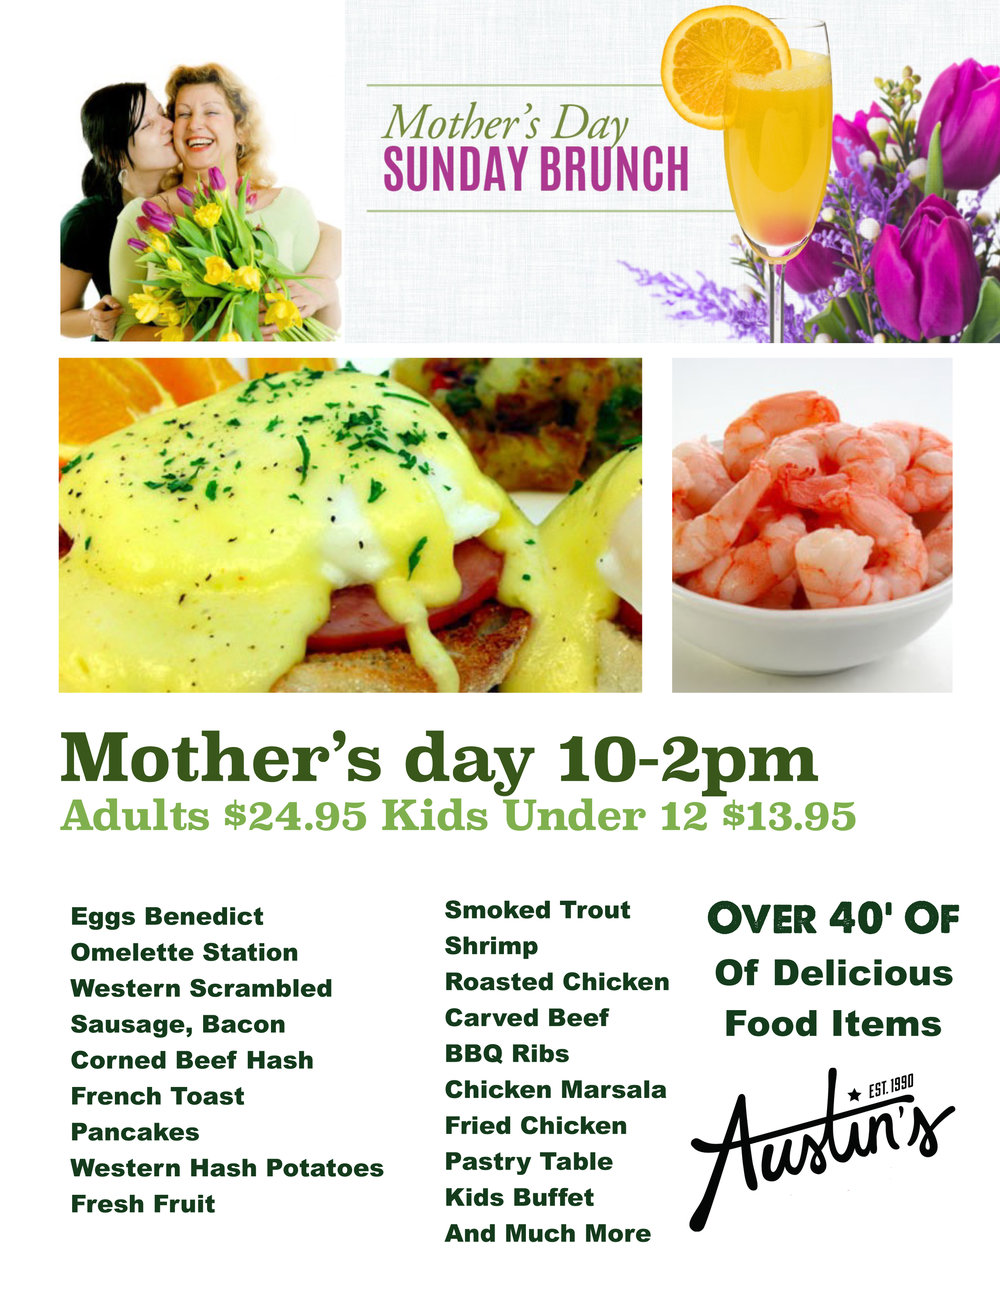 Mothers Day Brunch Austins Saloon Eatery Restaurant Sports Bar